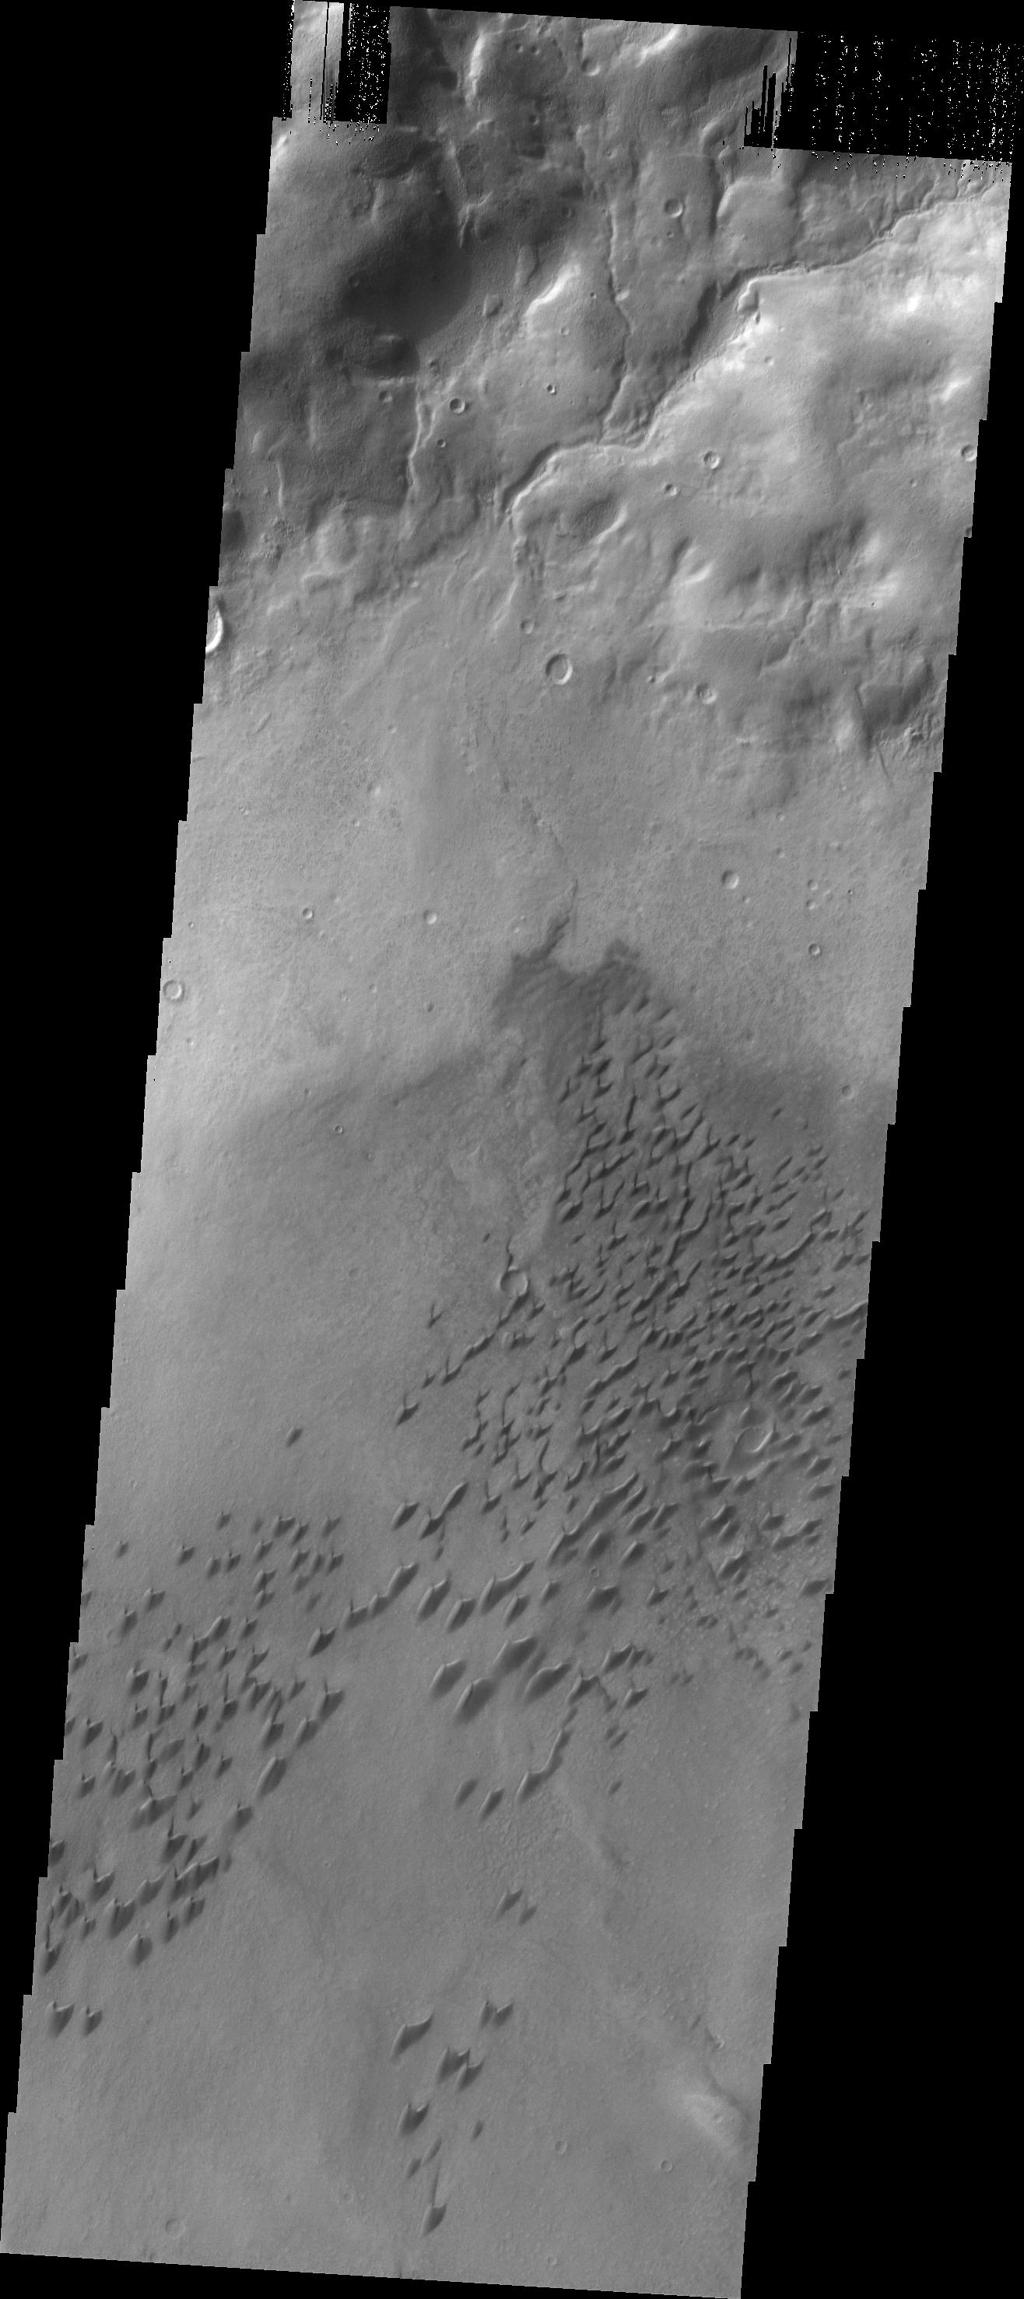 This image captured by NASA's 2001 Mars Odyssey spacecraft shows part of the dune field located on the floor of Arkhangelsky Crater.